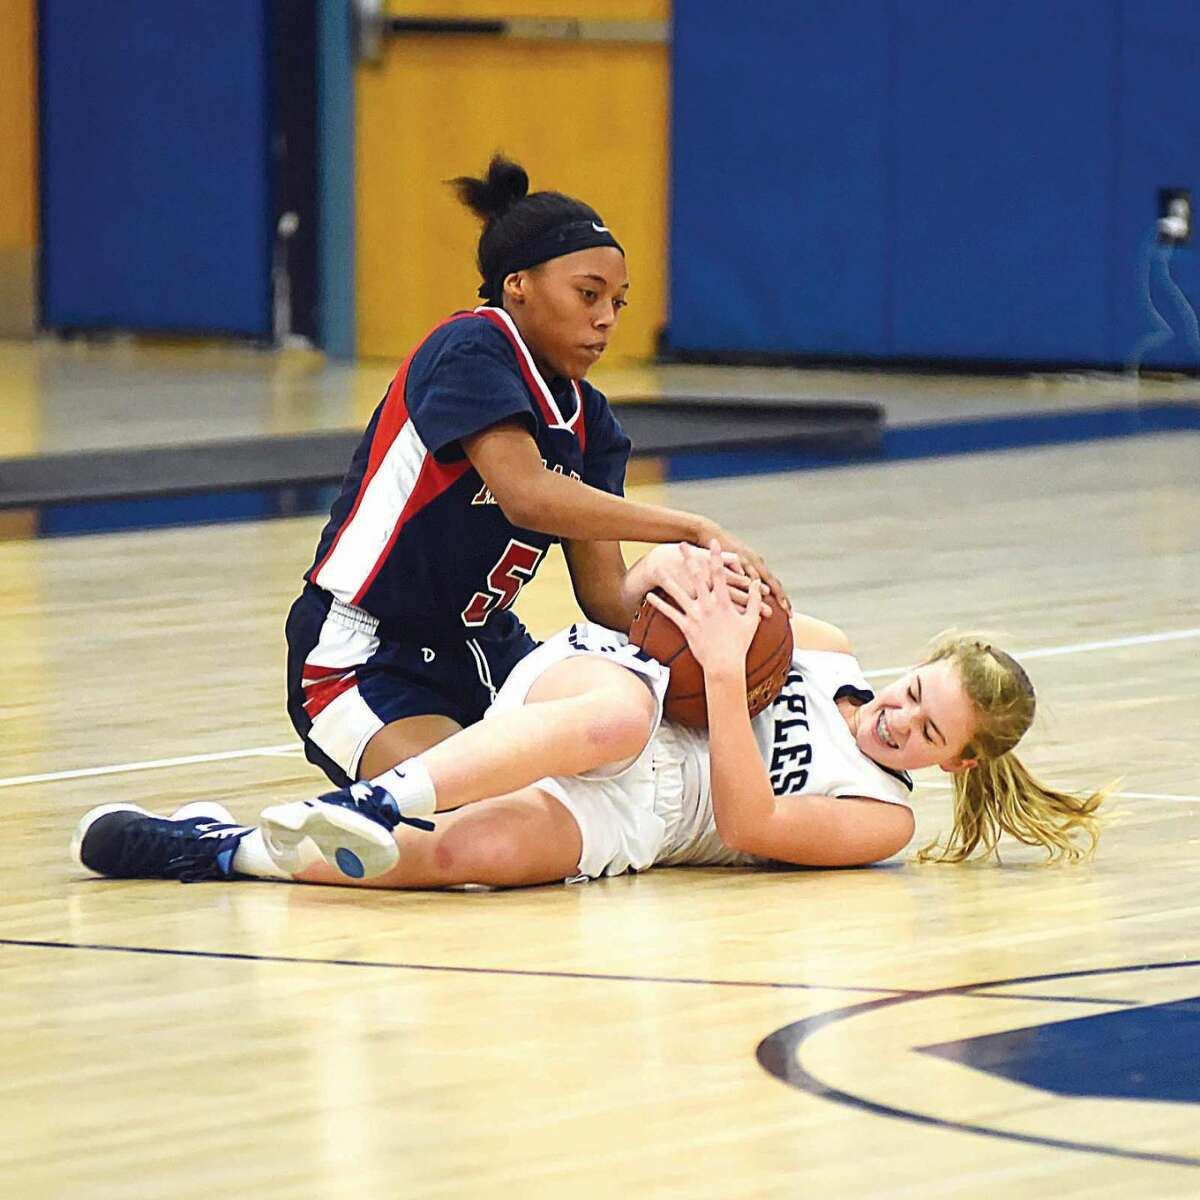 Hour photo/John Nash - Staples' Elle Fair, bottom, gets tied up by Brien McMahon's Aiyanna Lee-Williams during Friday's girls basketball game in Westport.